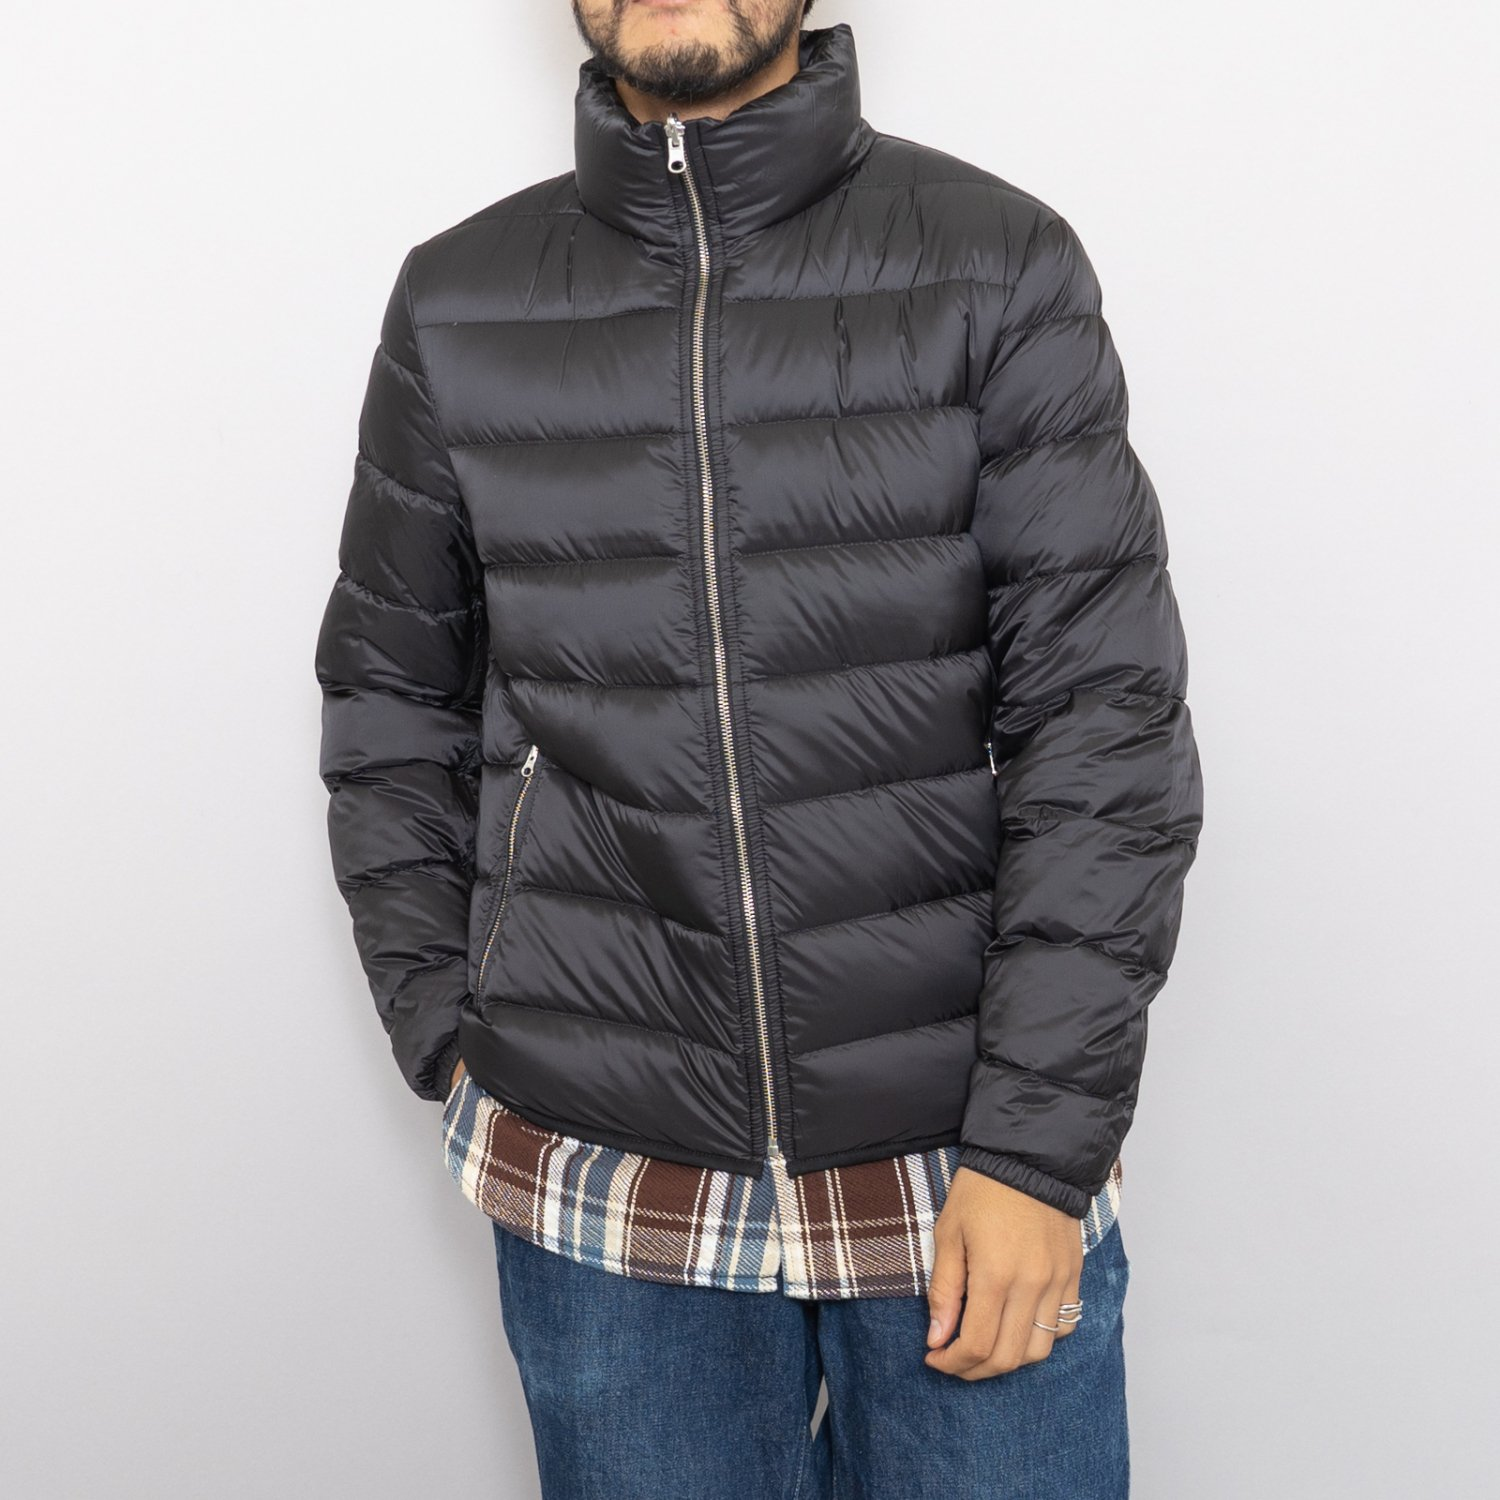 Ten-c * DOWN LINER WITH POCKETS * Black